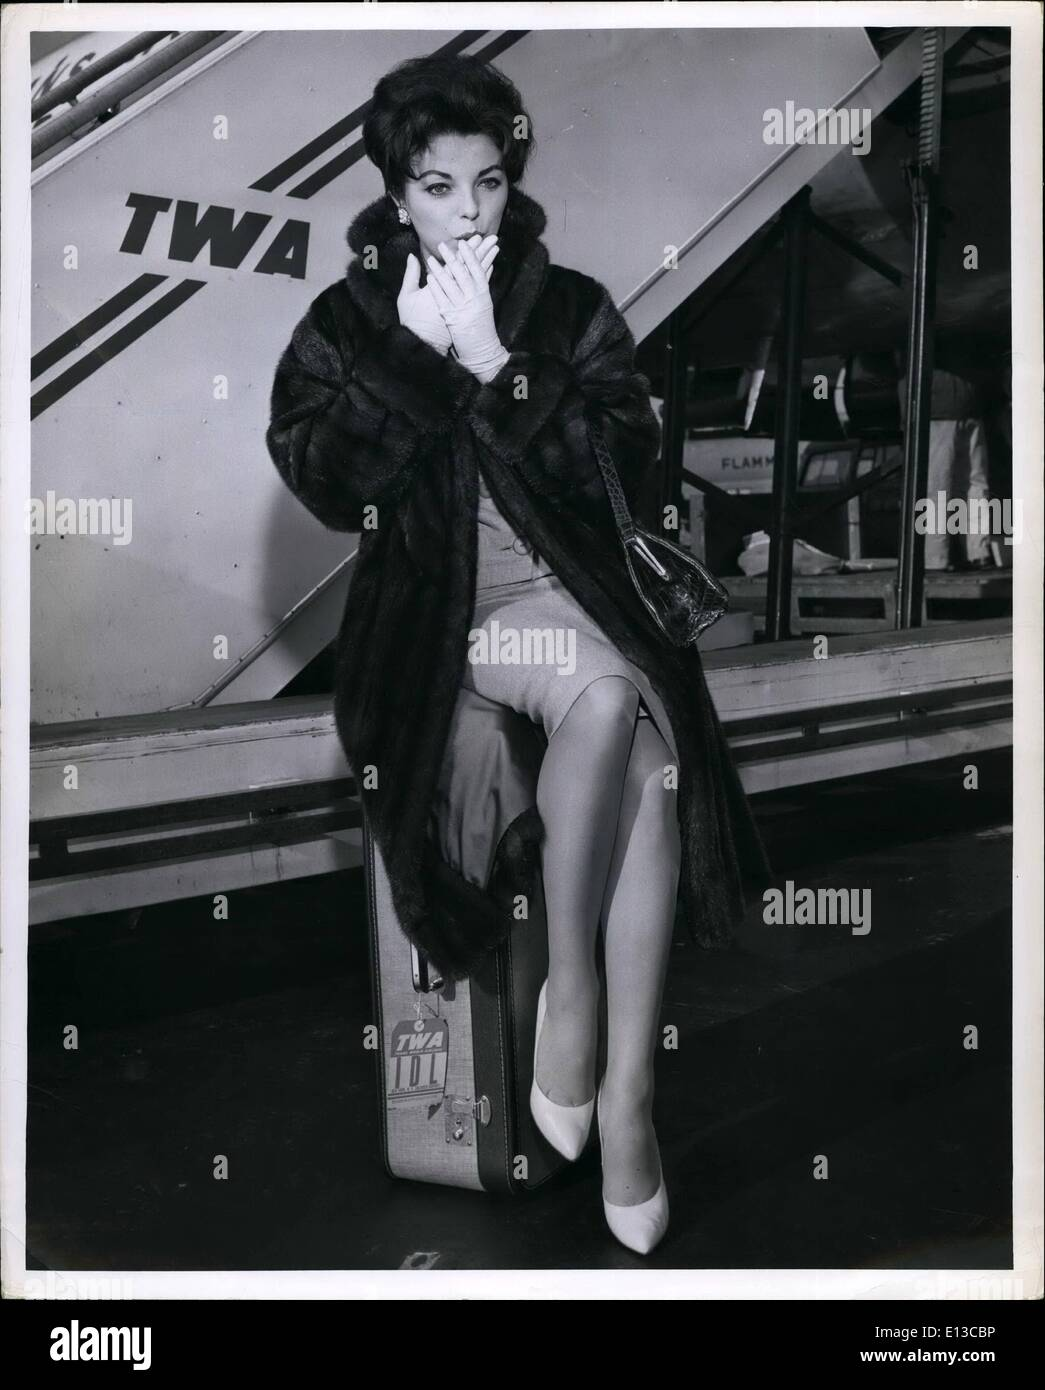 Feb. 29, 2012 - Glamorous Joan Collins arrives at Idlewild from Los Angeles via TWA Jetstream in advance of her new century-fox - Stock Image